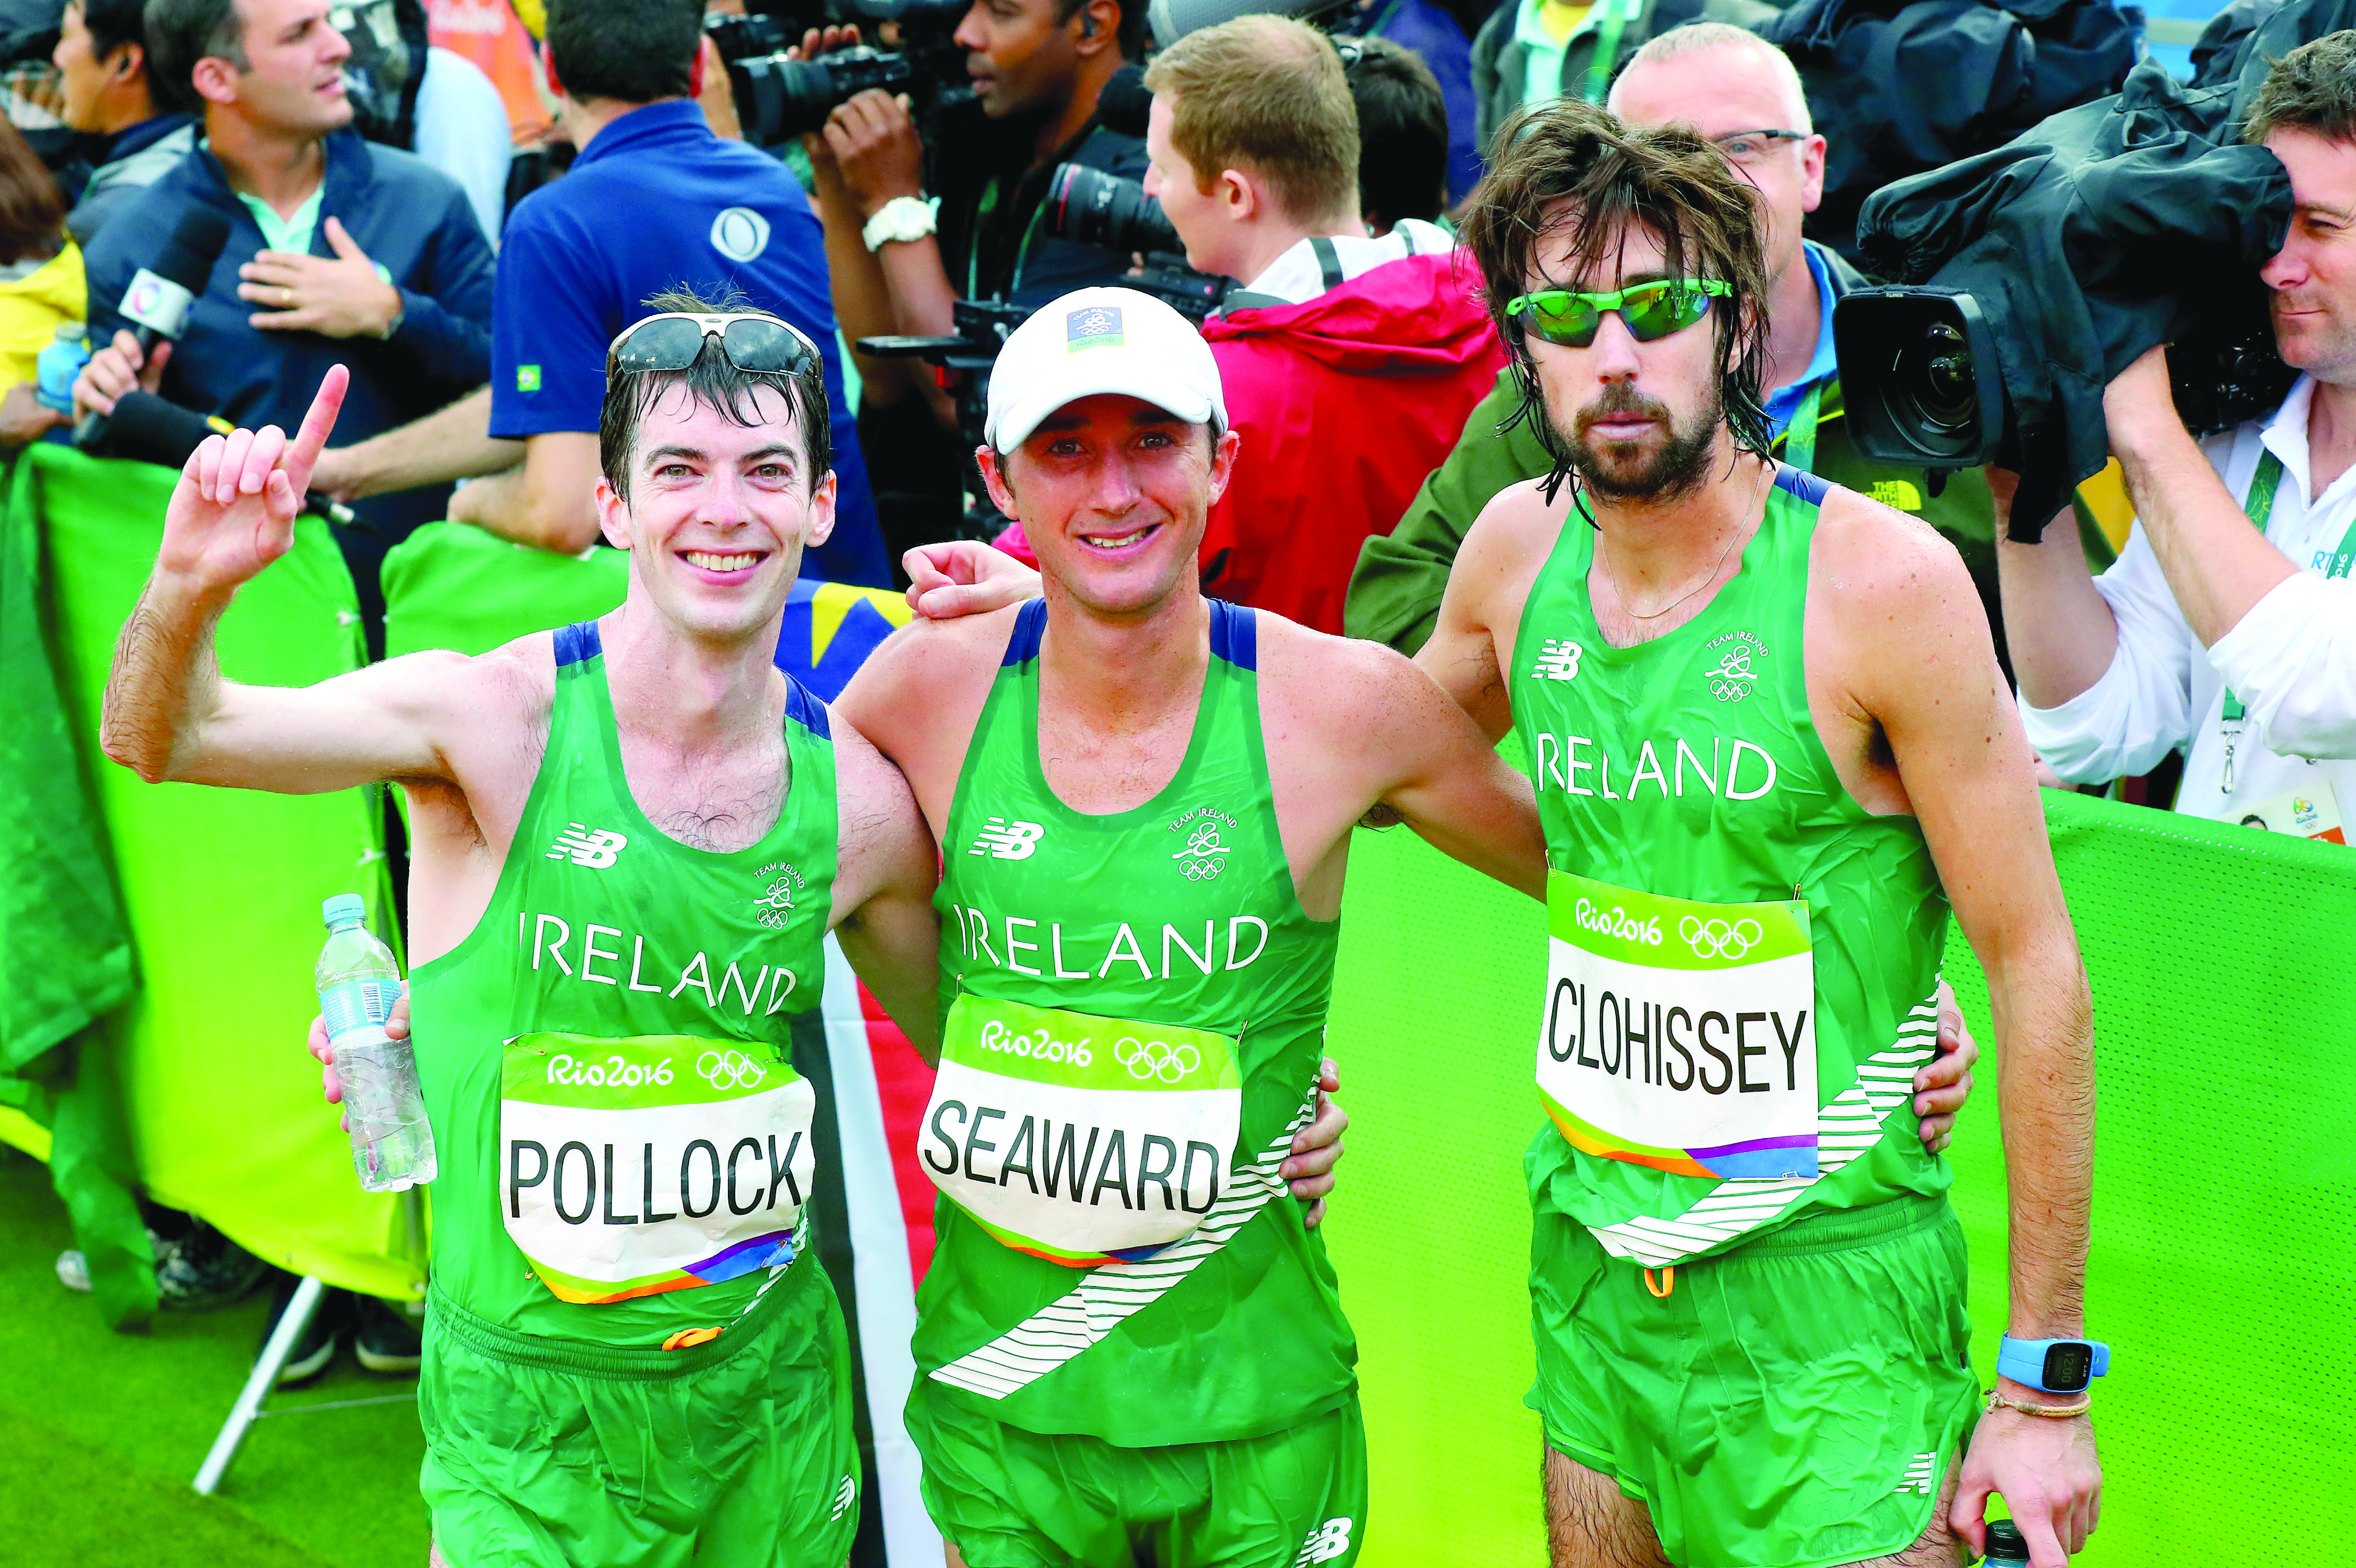 Paul Pollock (left) with Kevin Seaward and Mick Clohisey after finishing the men\'s marathon in Rio 2016